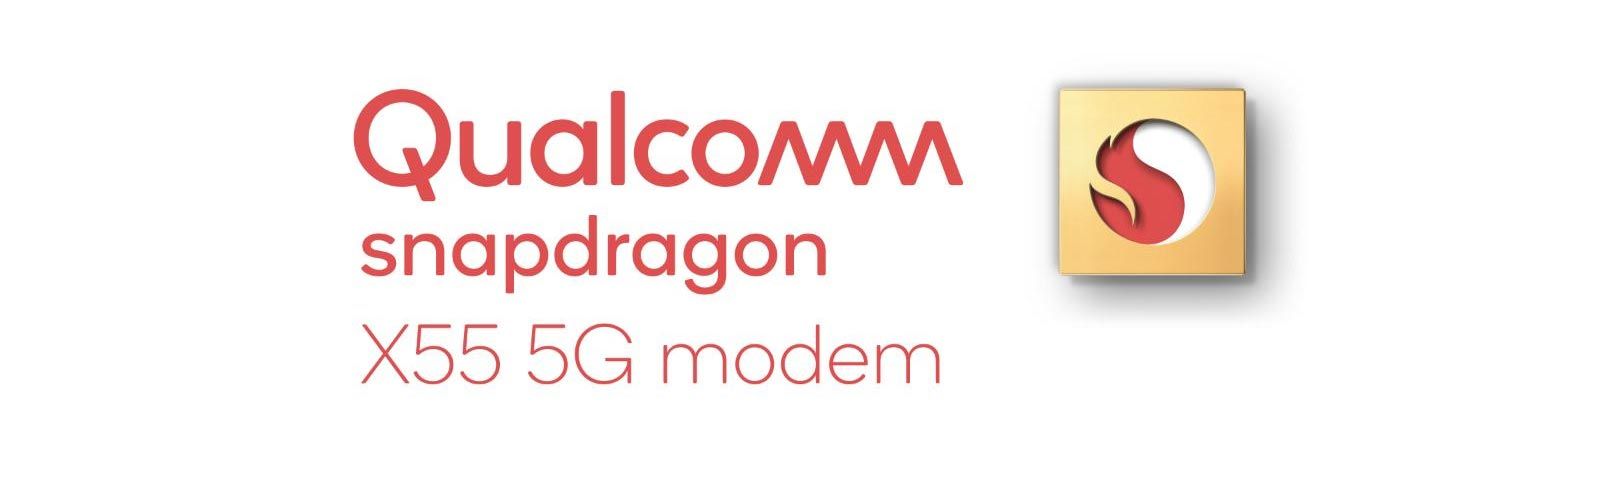 Qualcomm will launch multiple 5G mobile platforms in 2020 with the Snapdragon X55 5G modem